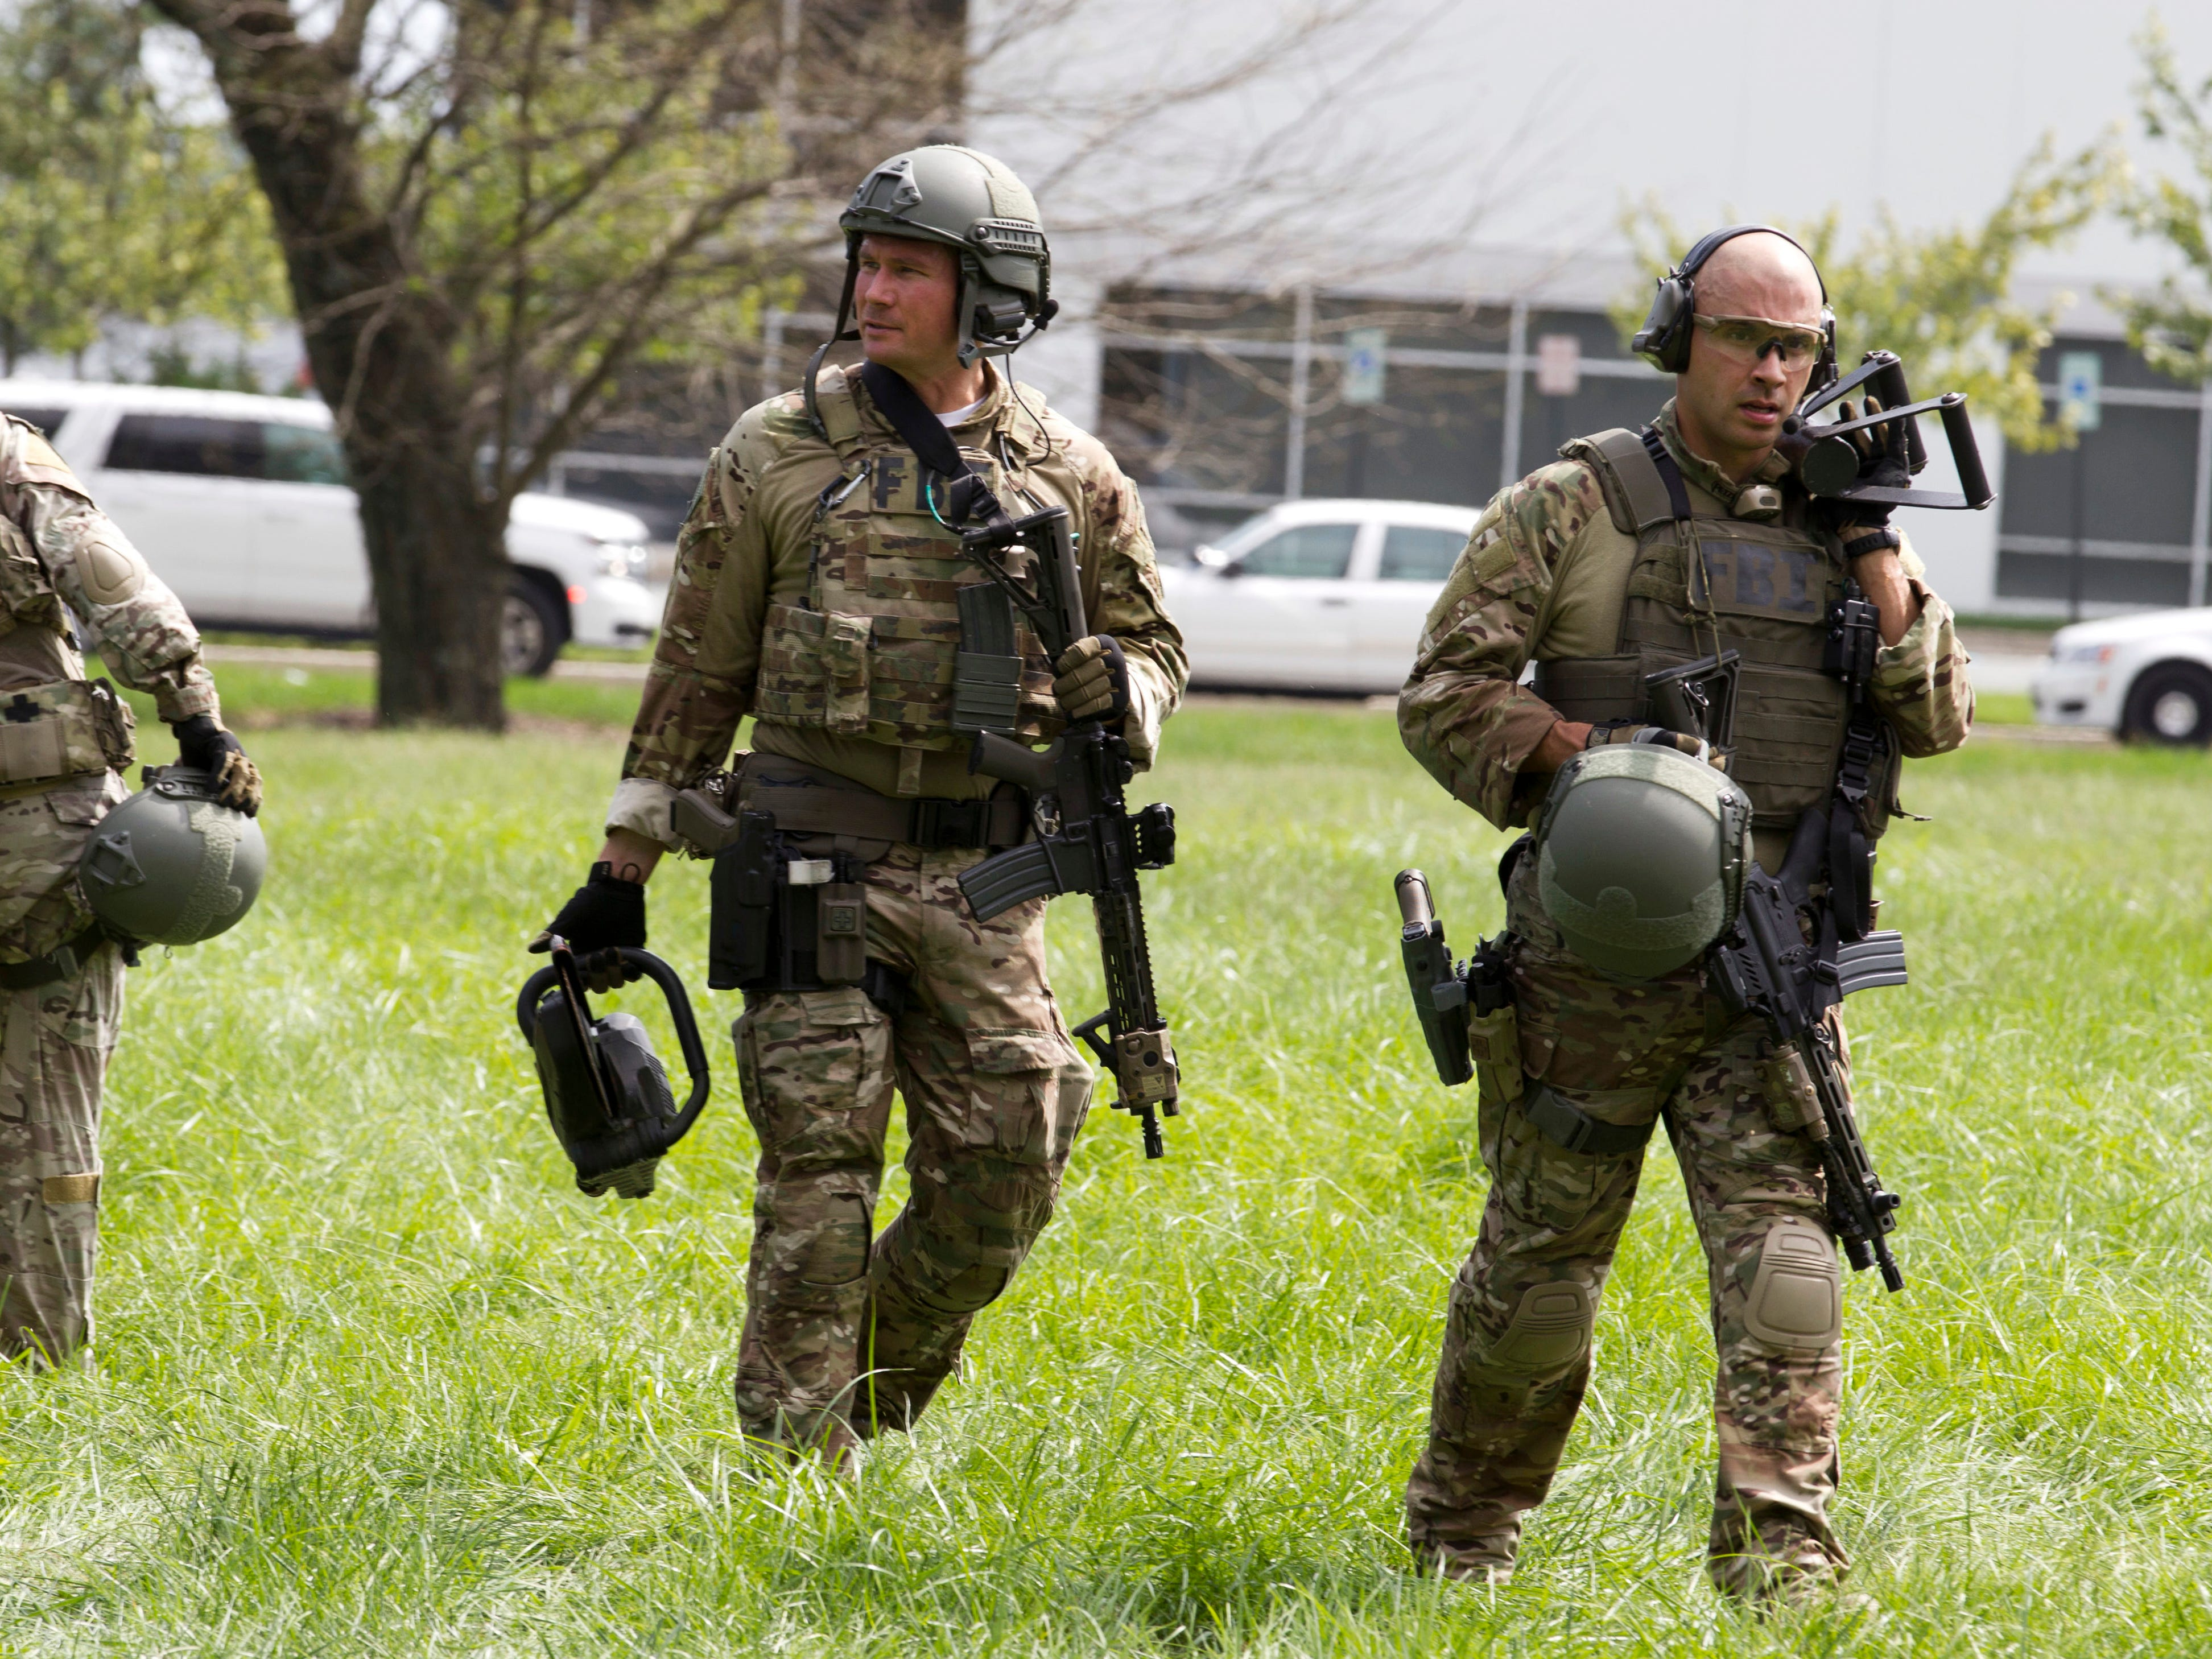 FBI agents are seen at the industrial business park where several people had been shot, according to police reports in Harford County, Md., on Thursday, Sept. 20, 2018.